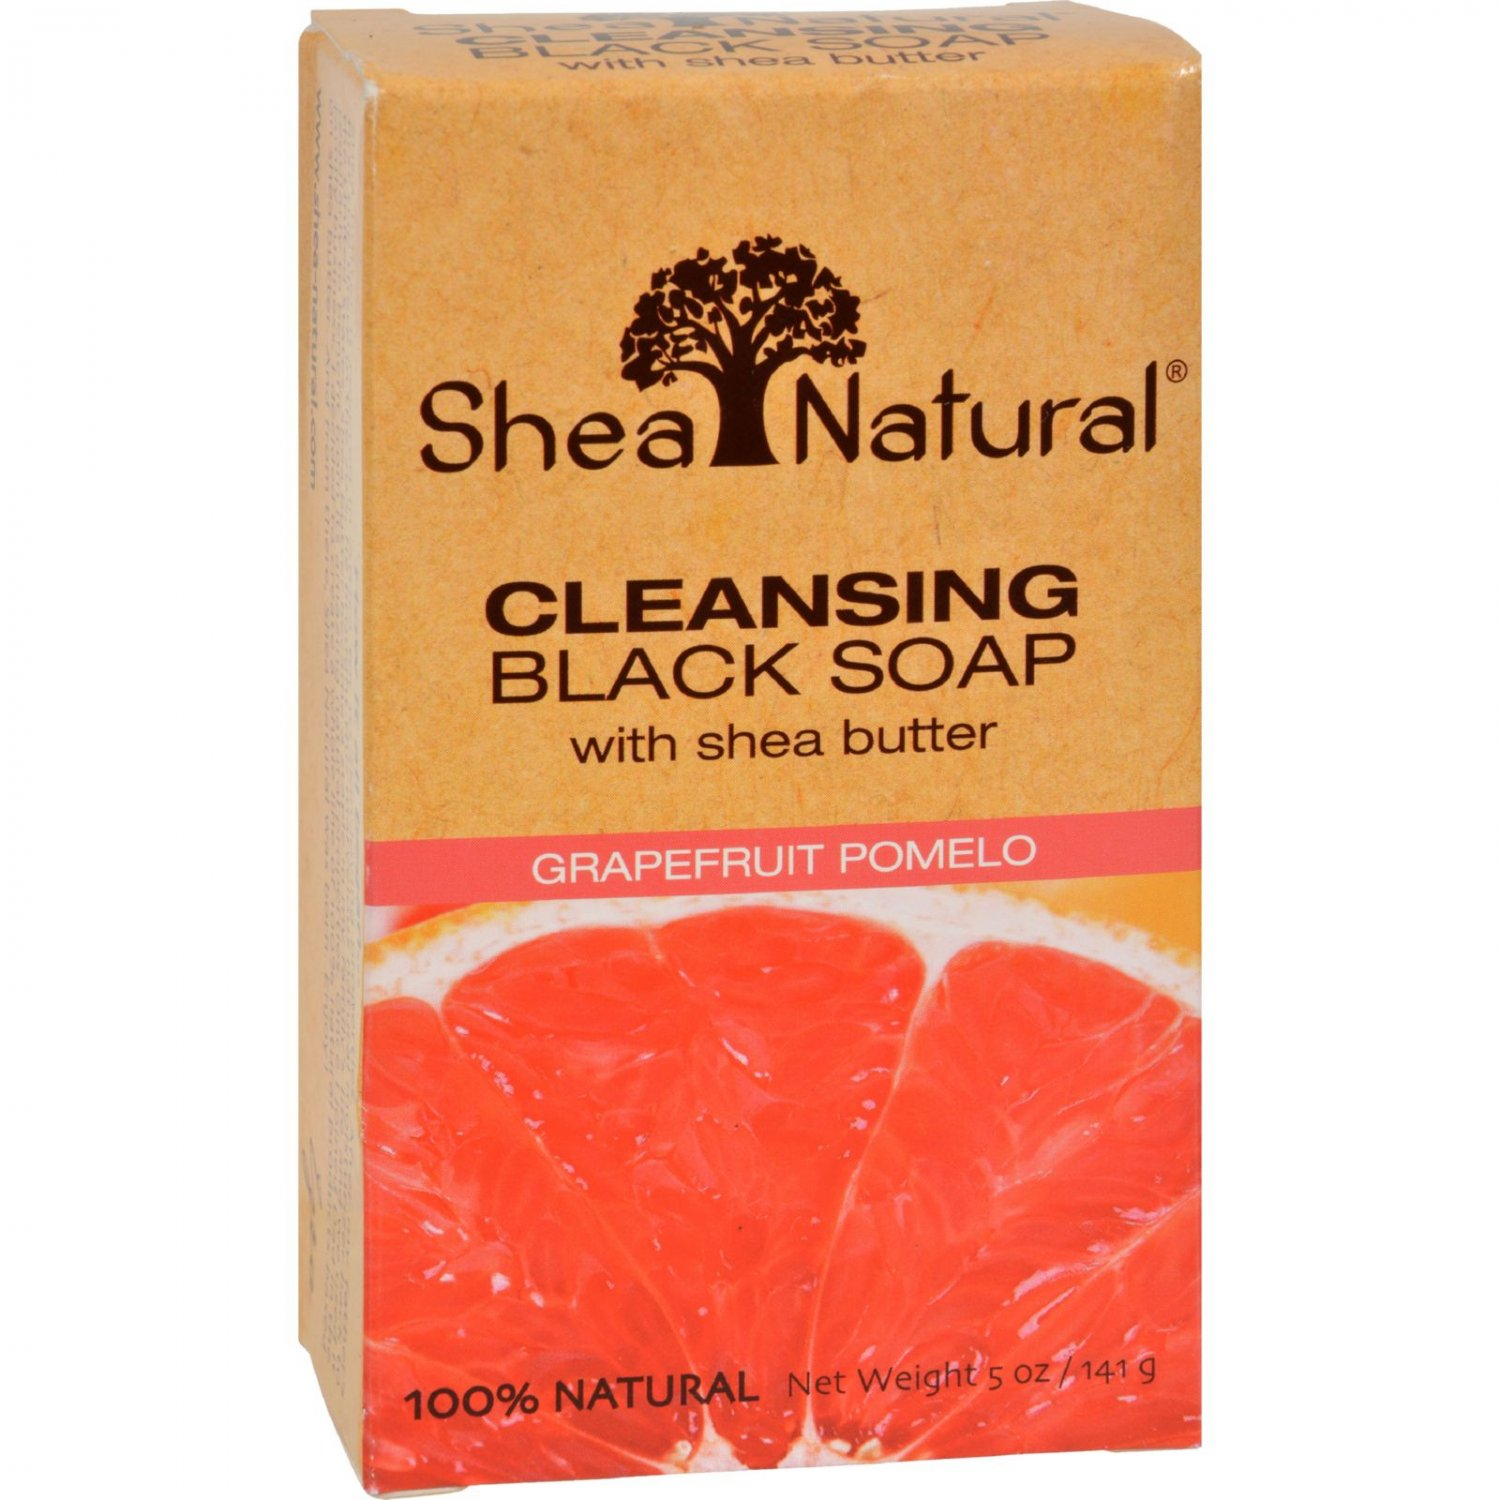 Shea Natural Black Soap - Shea Butter Cleansing Grapefruit Pomelo - 5 oz